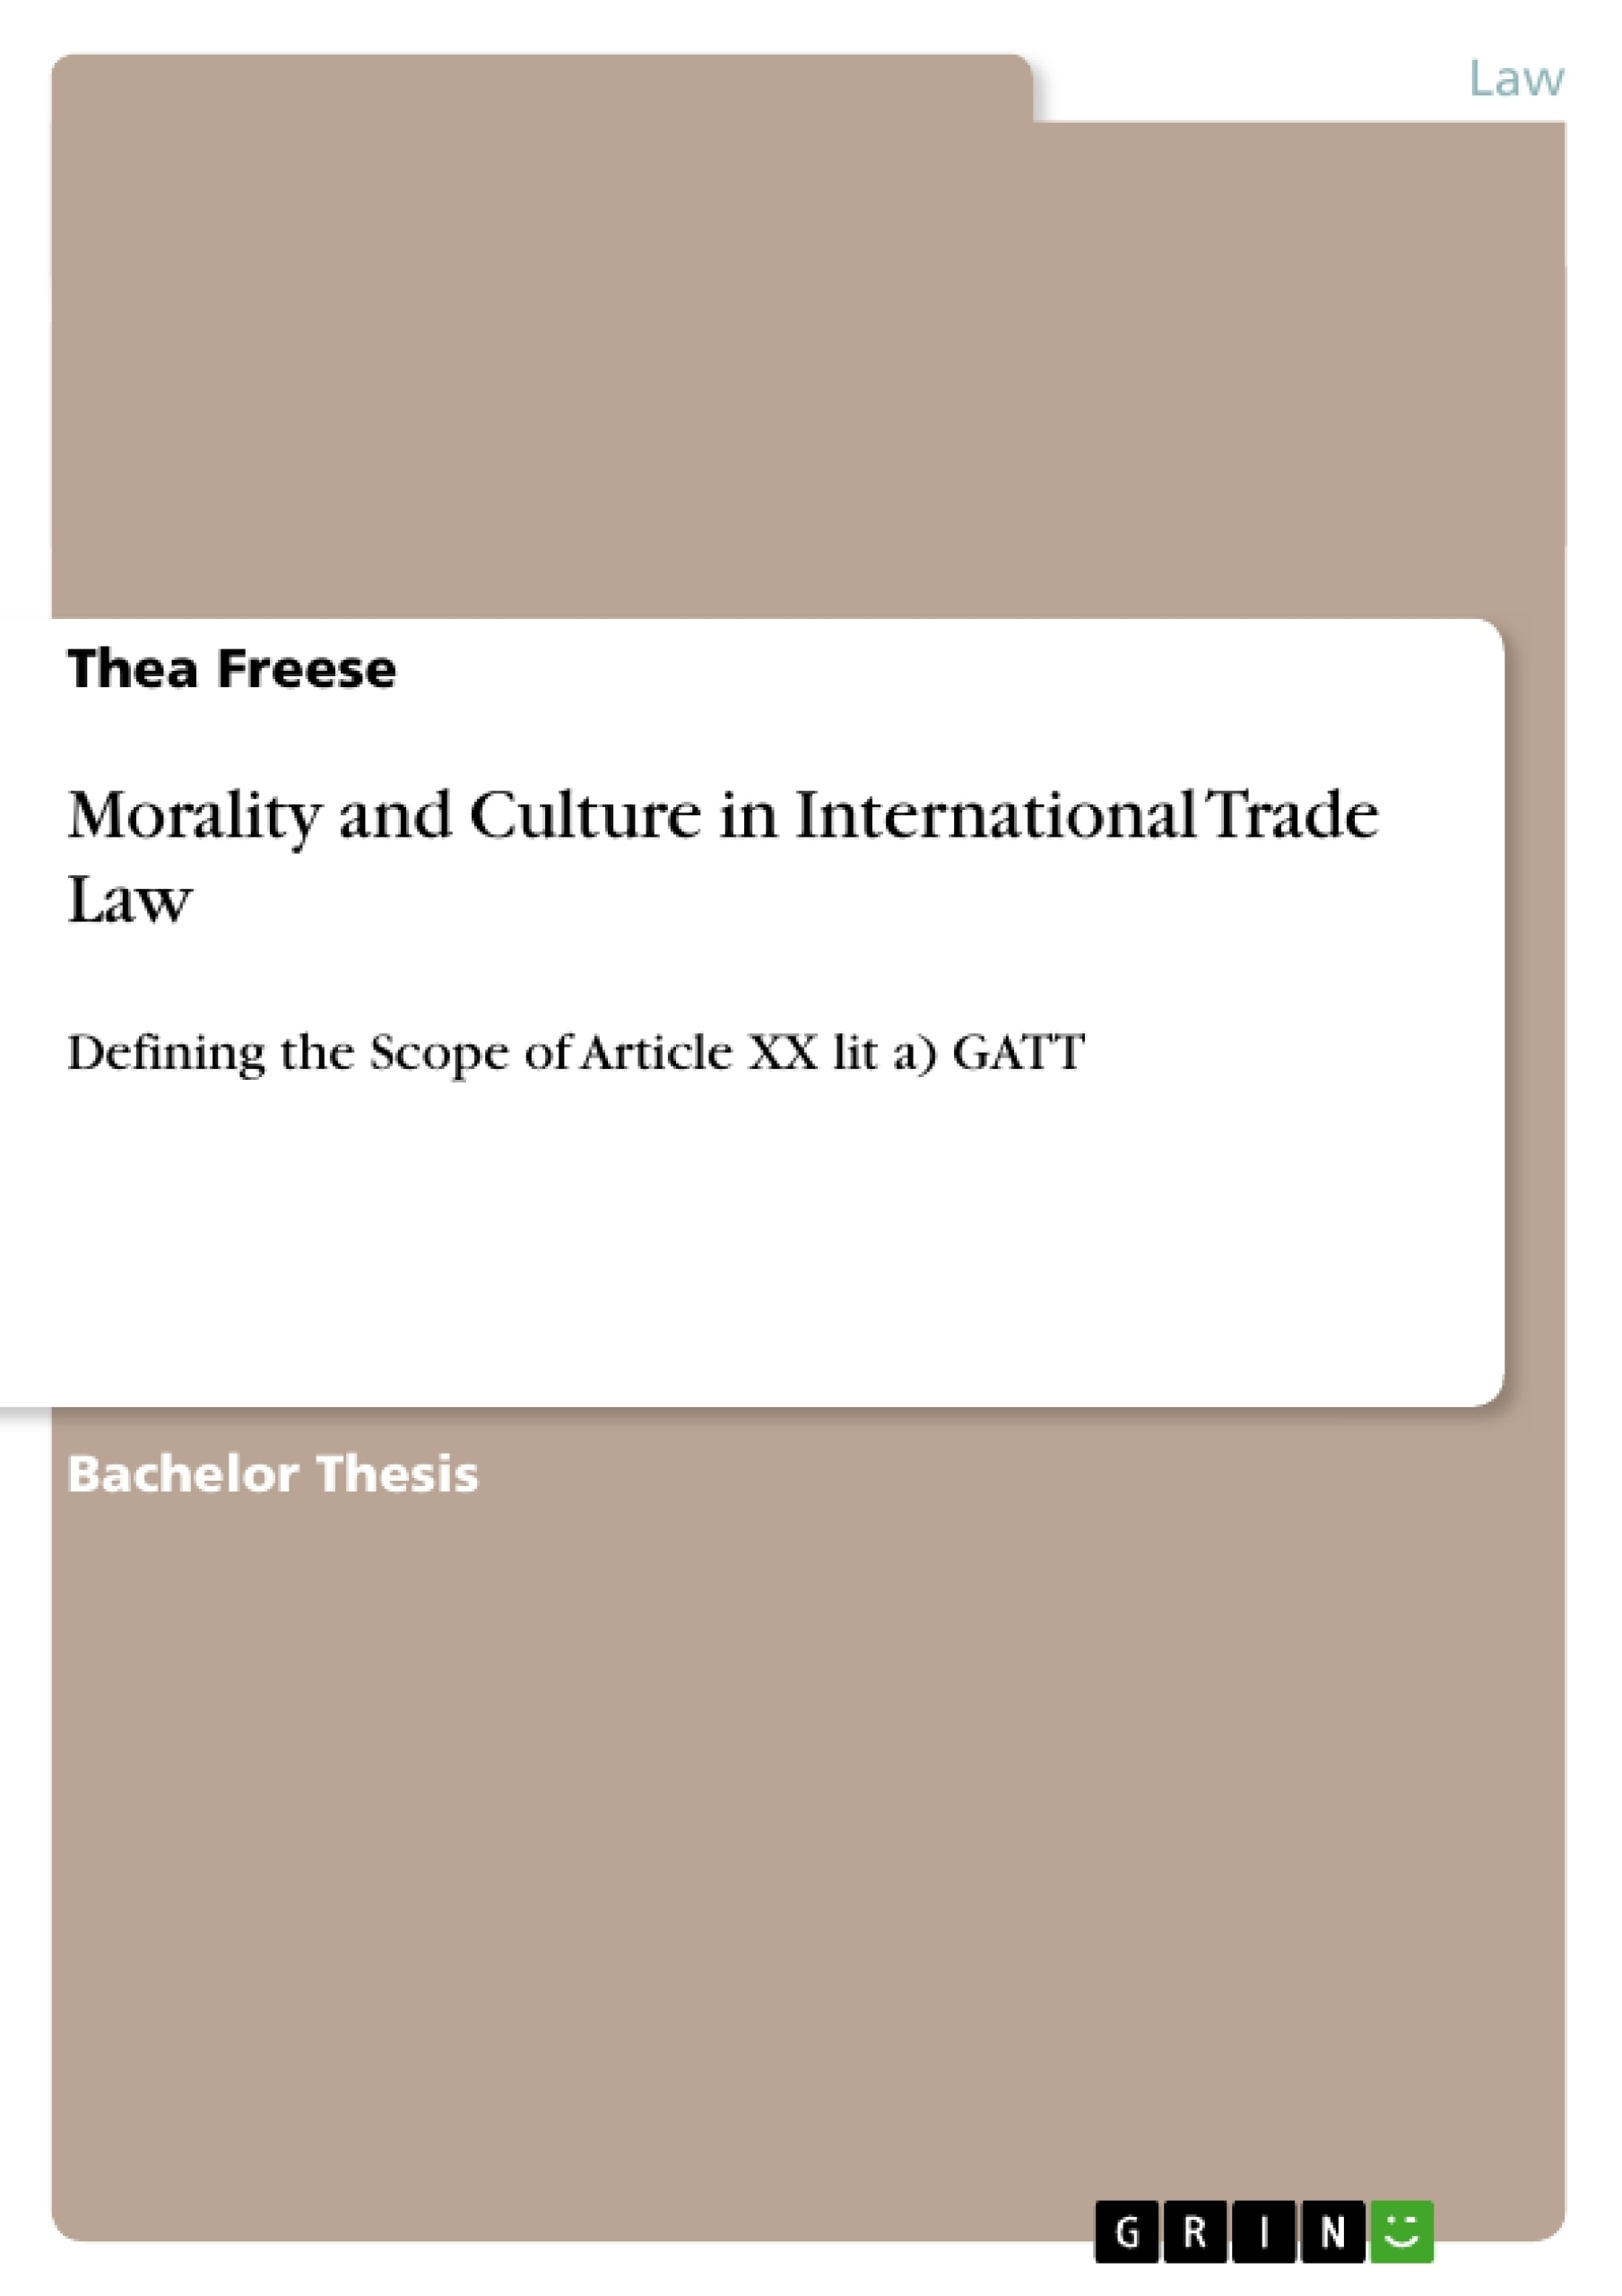 Title: Morality and Culture in International Trade Law